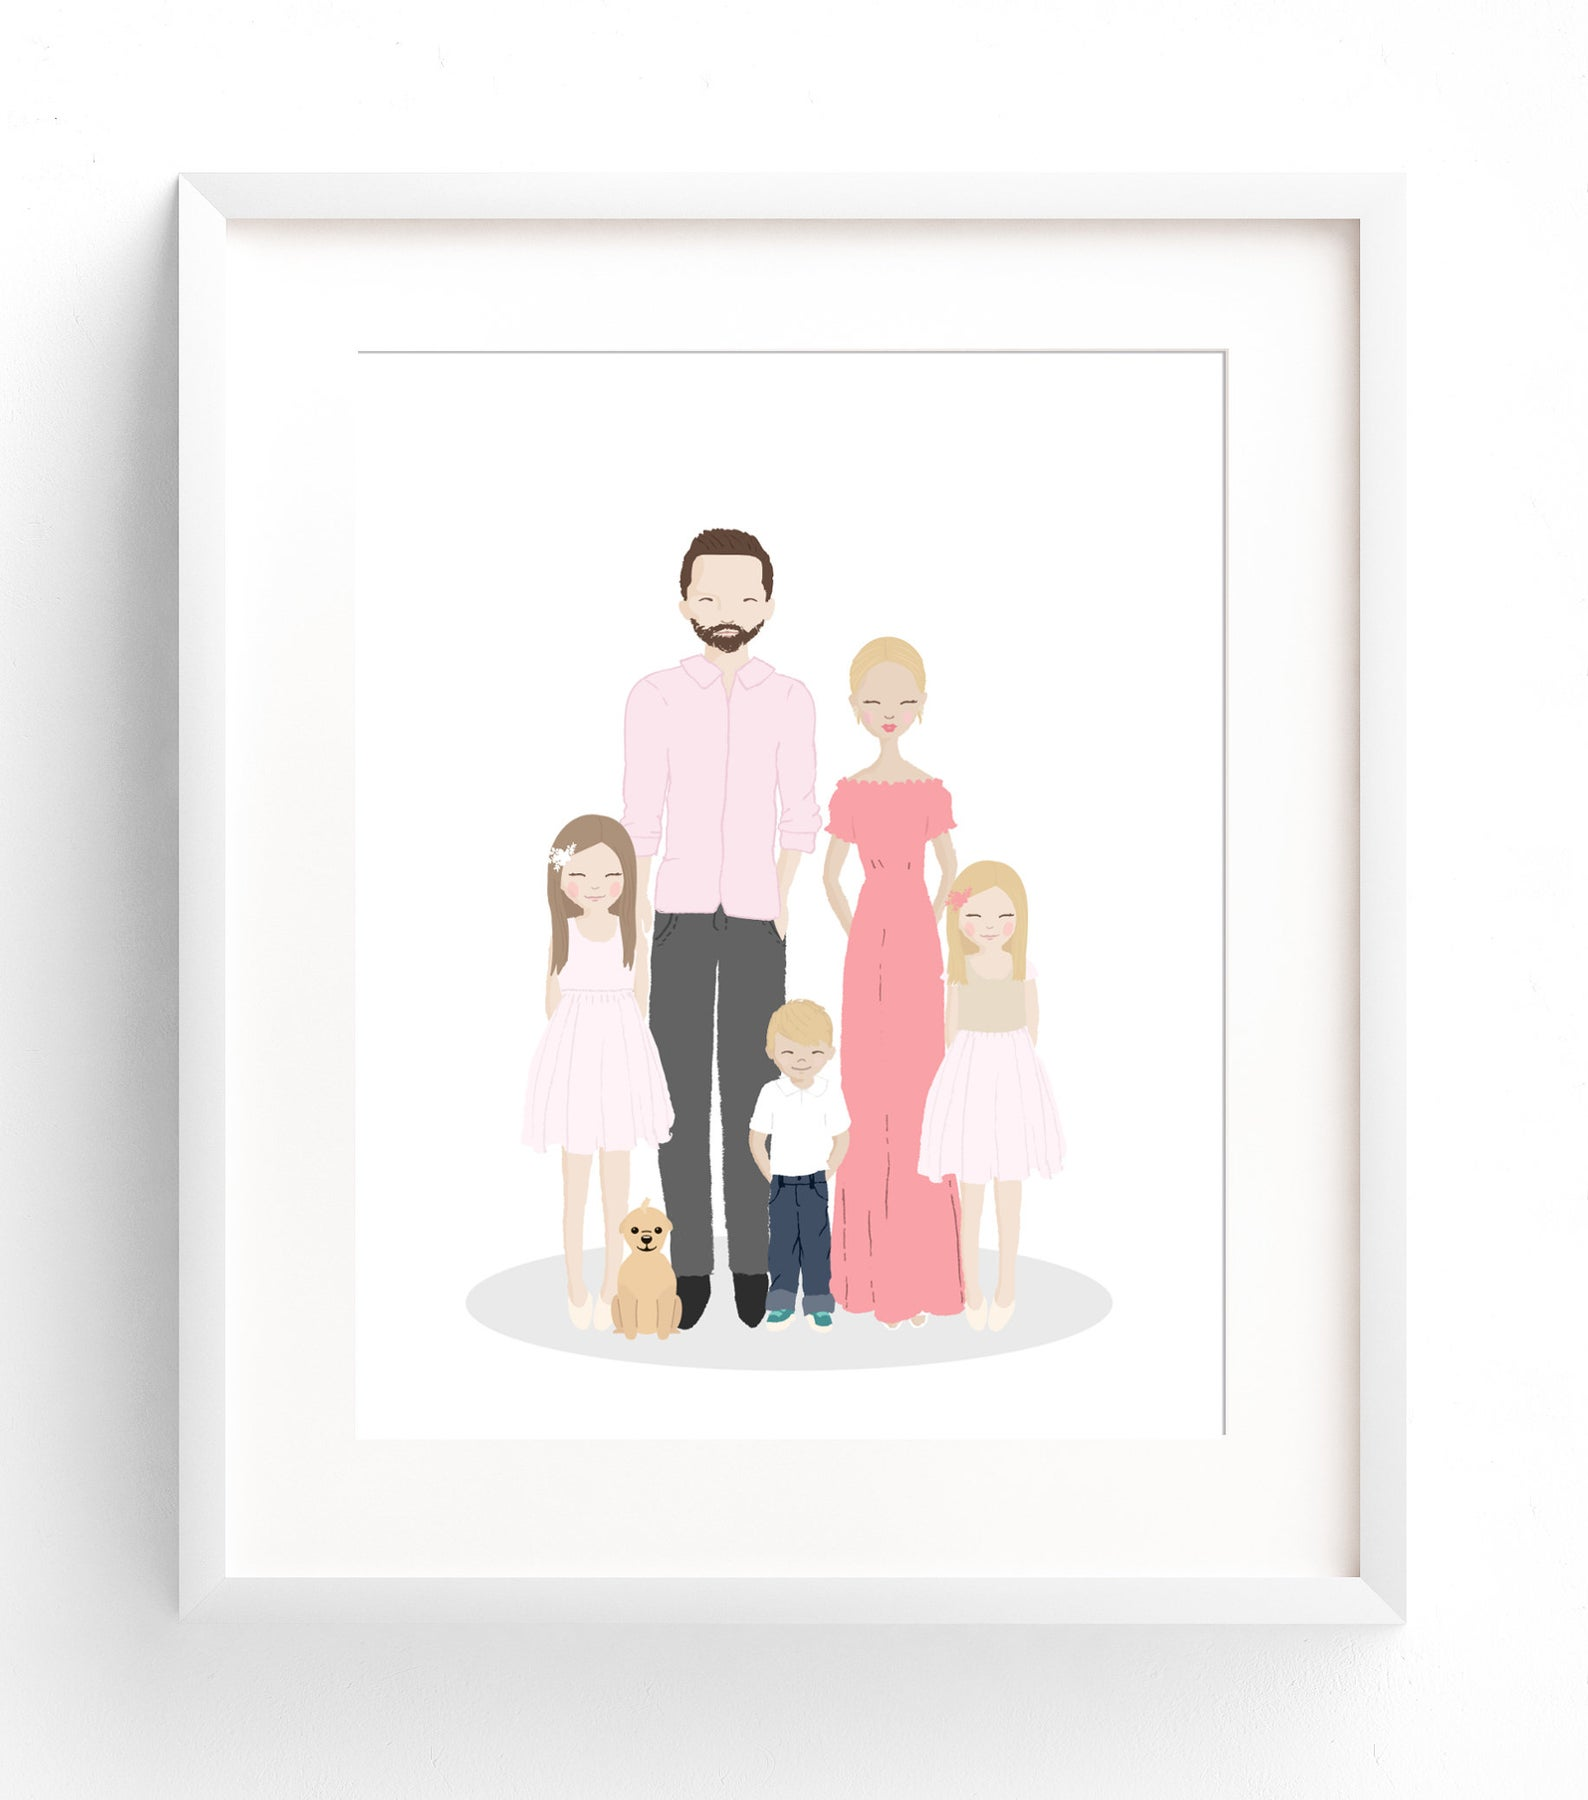 Custom illustrated family portrait for a personalized Christmas gift.